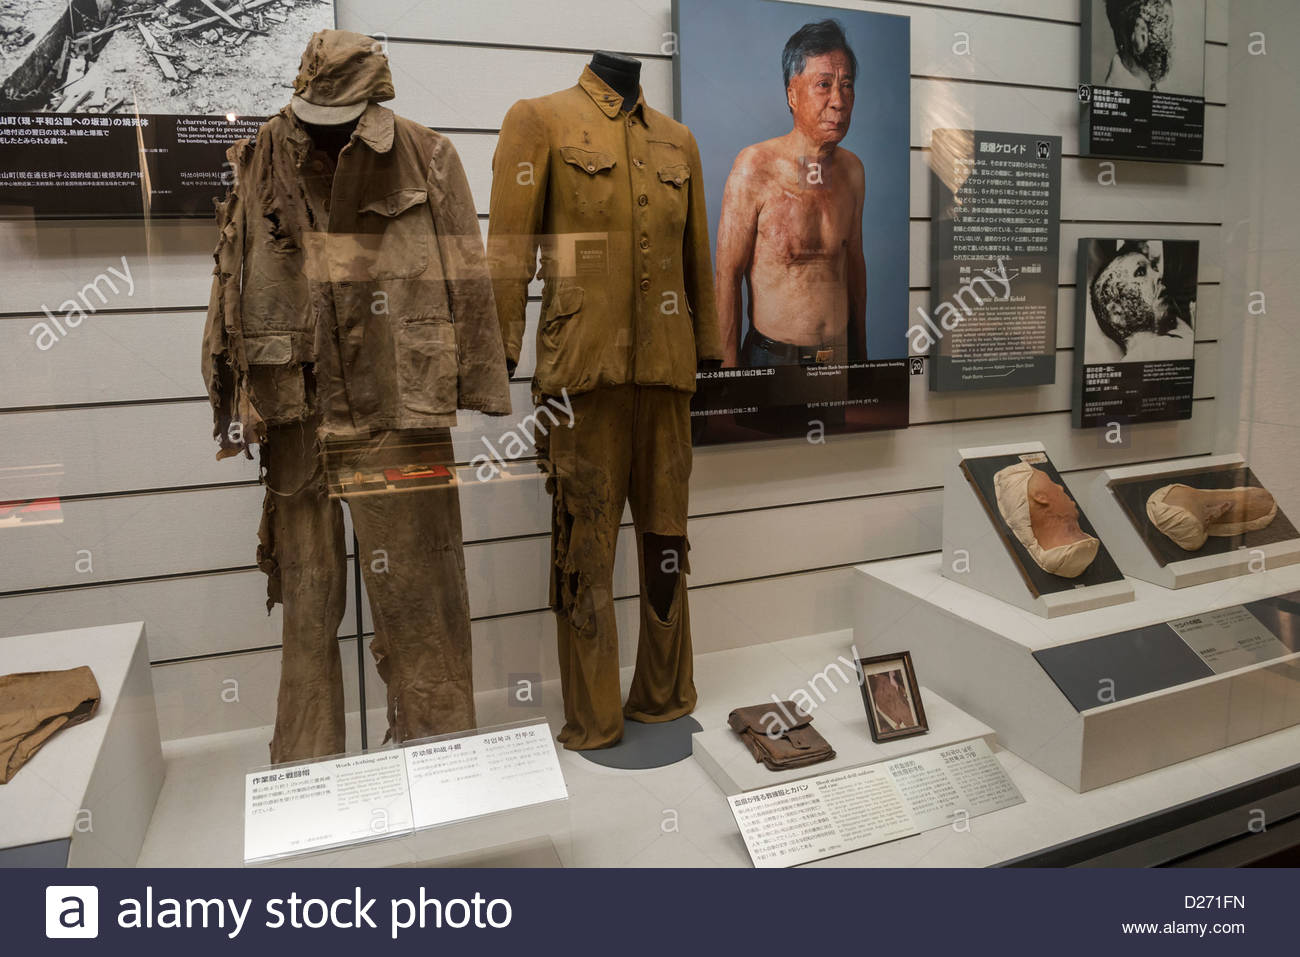 Shiroyama Elementary School Nagasaki, Articles of Clothing Worn by Victims of the Nagasaki Atomic Bomb ...